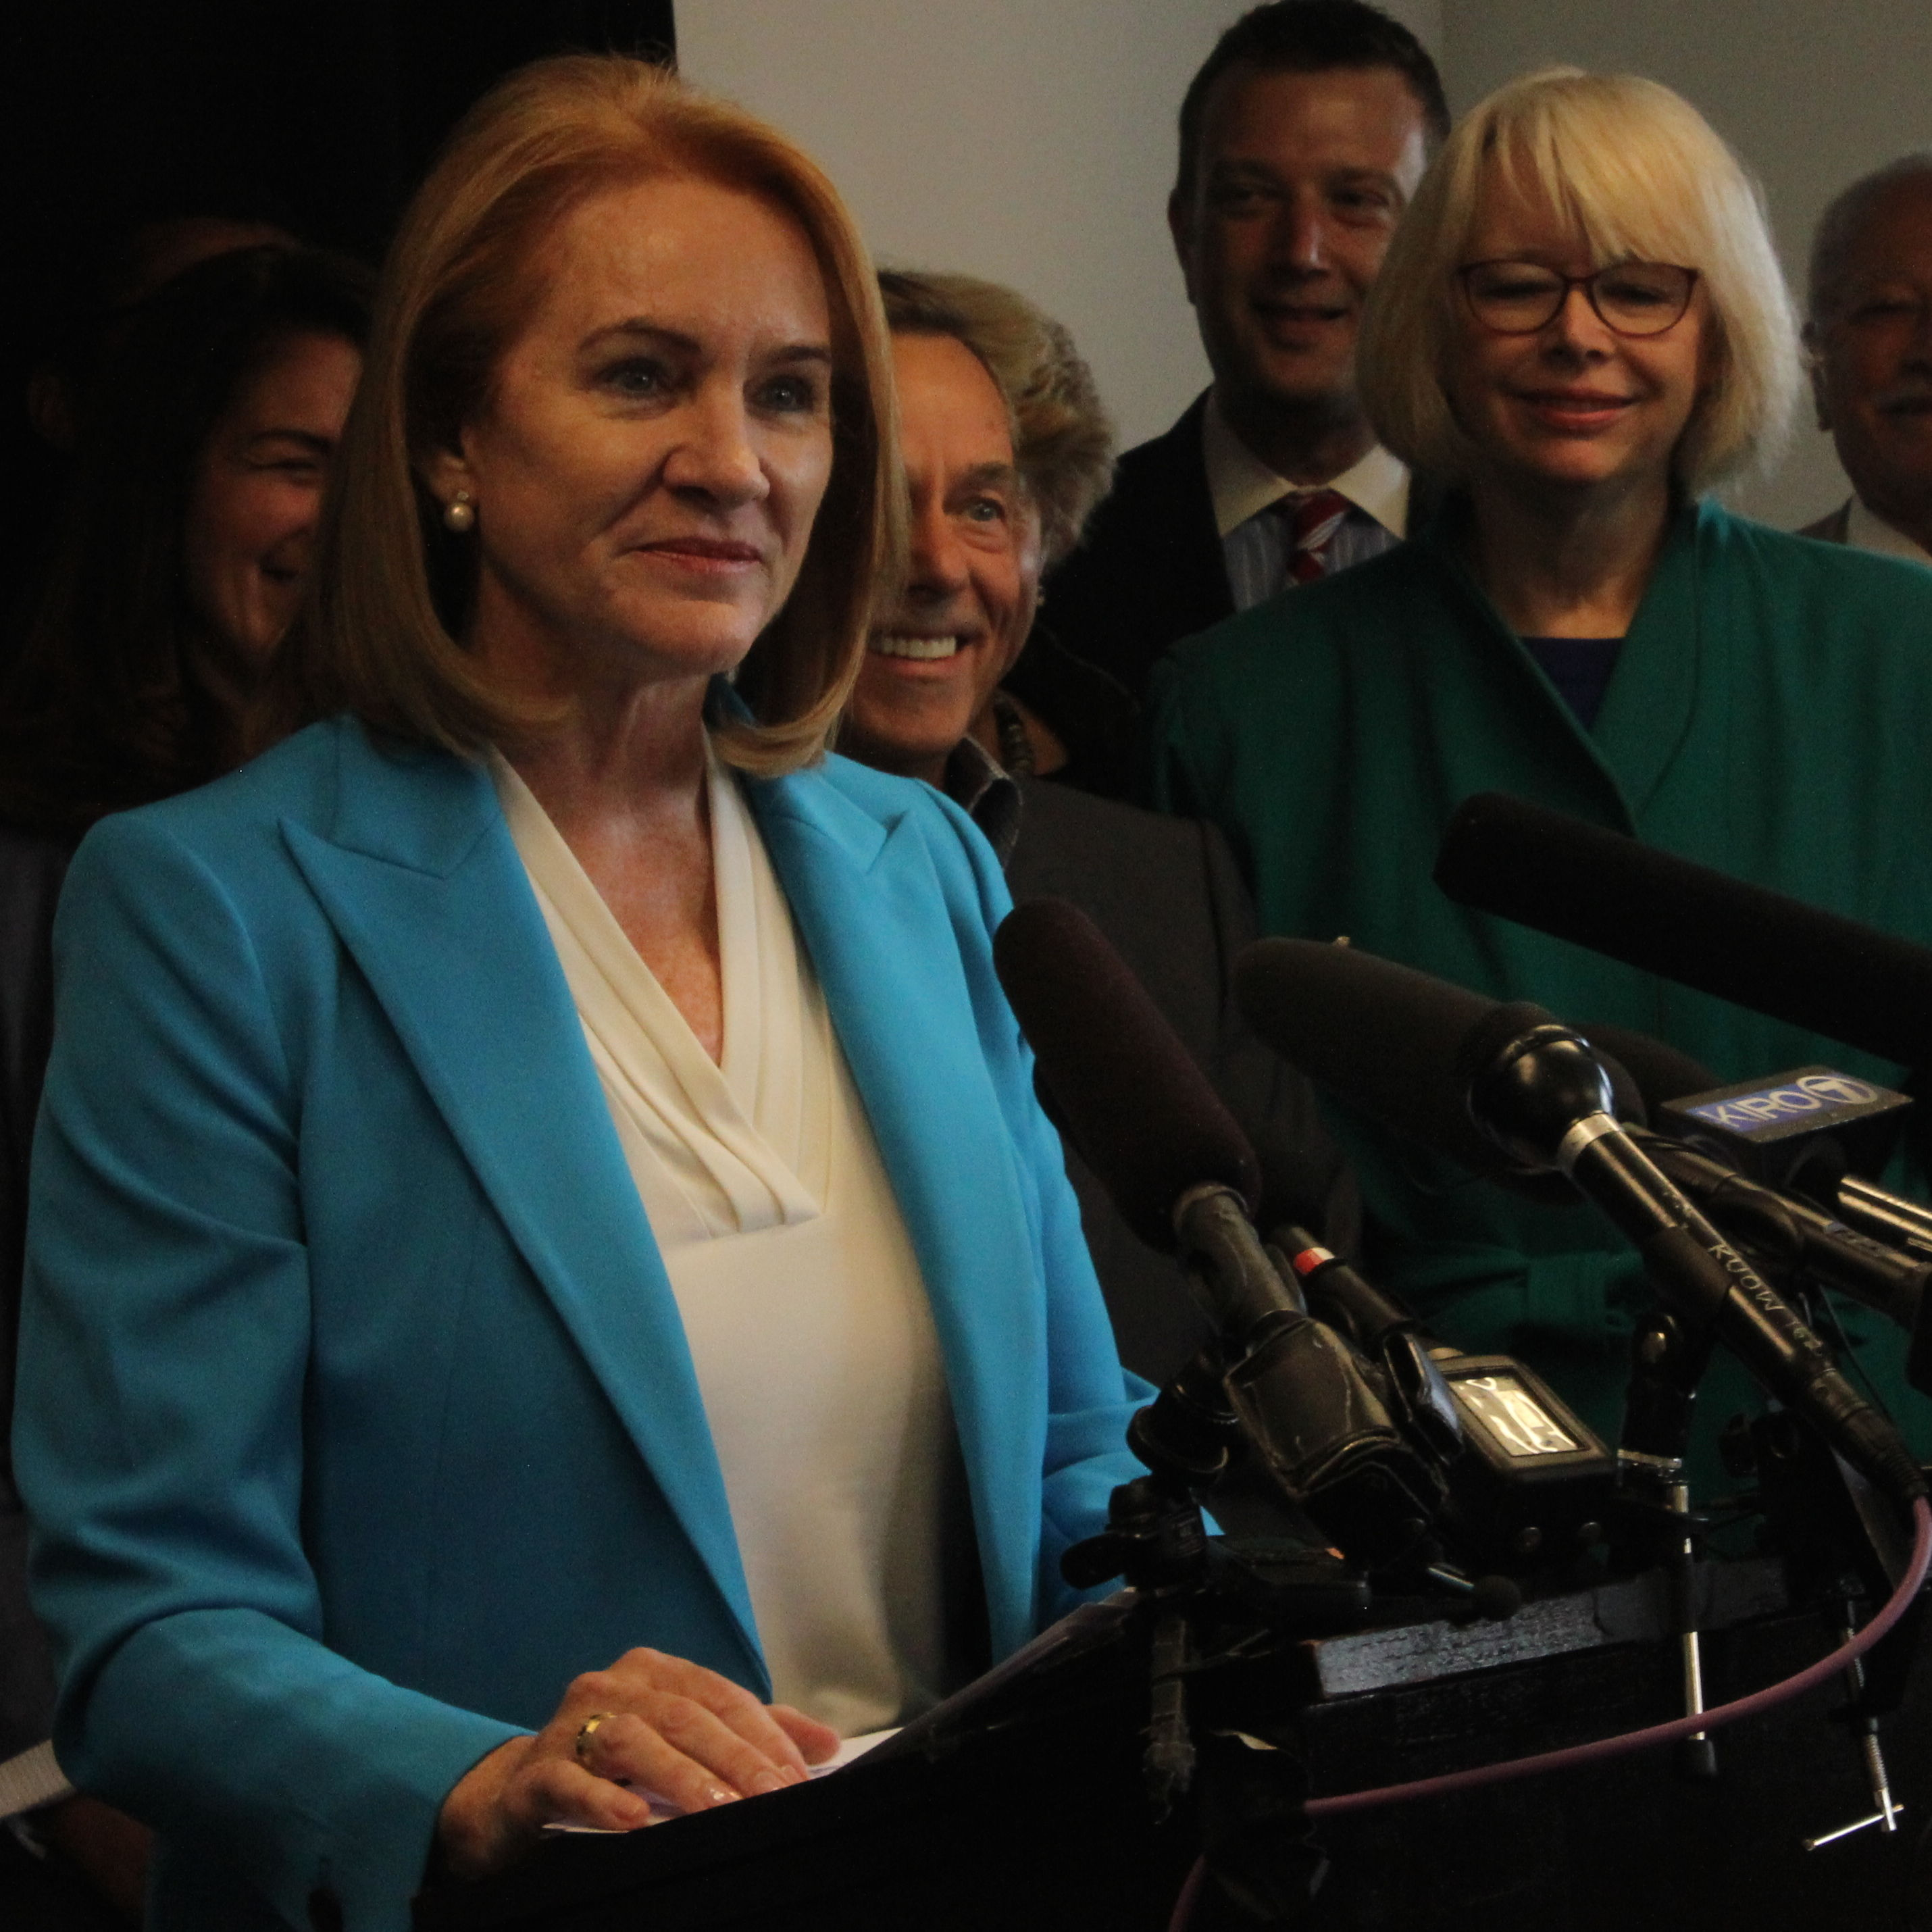 Jenny durkan mayor s race pacific tower may 12 dihypt